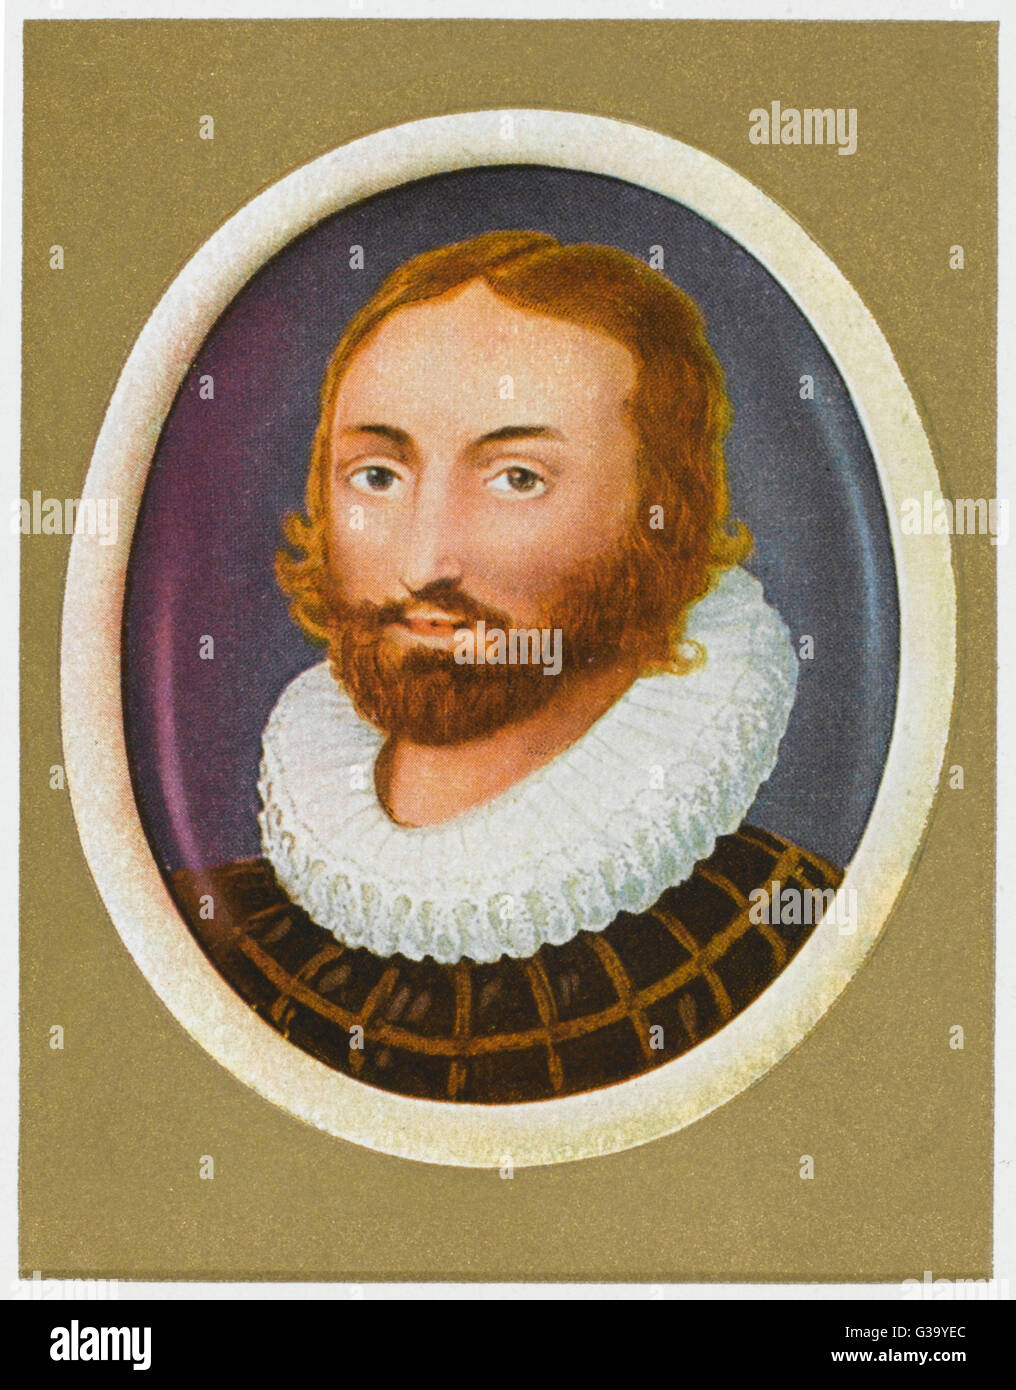 EDMUND SPENSER  English poet         Date: 1552 - 1599 - Stock Image